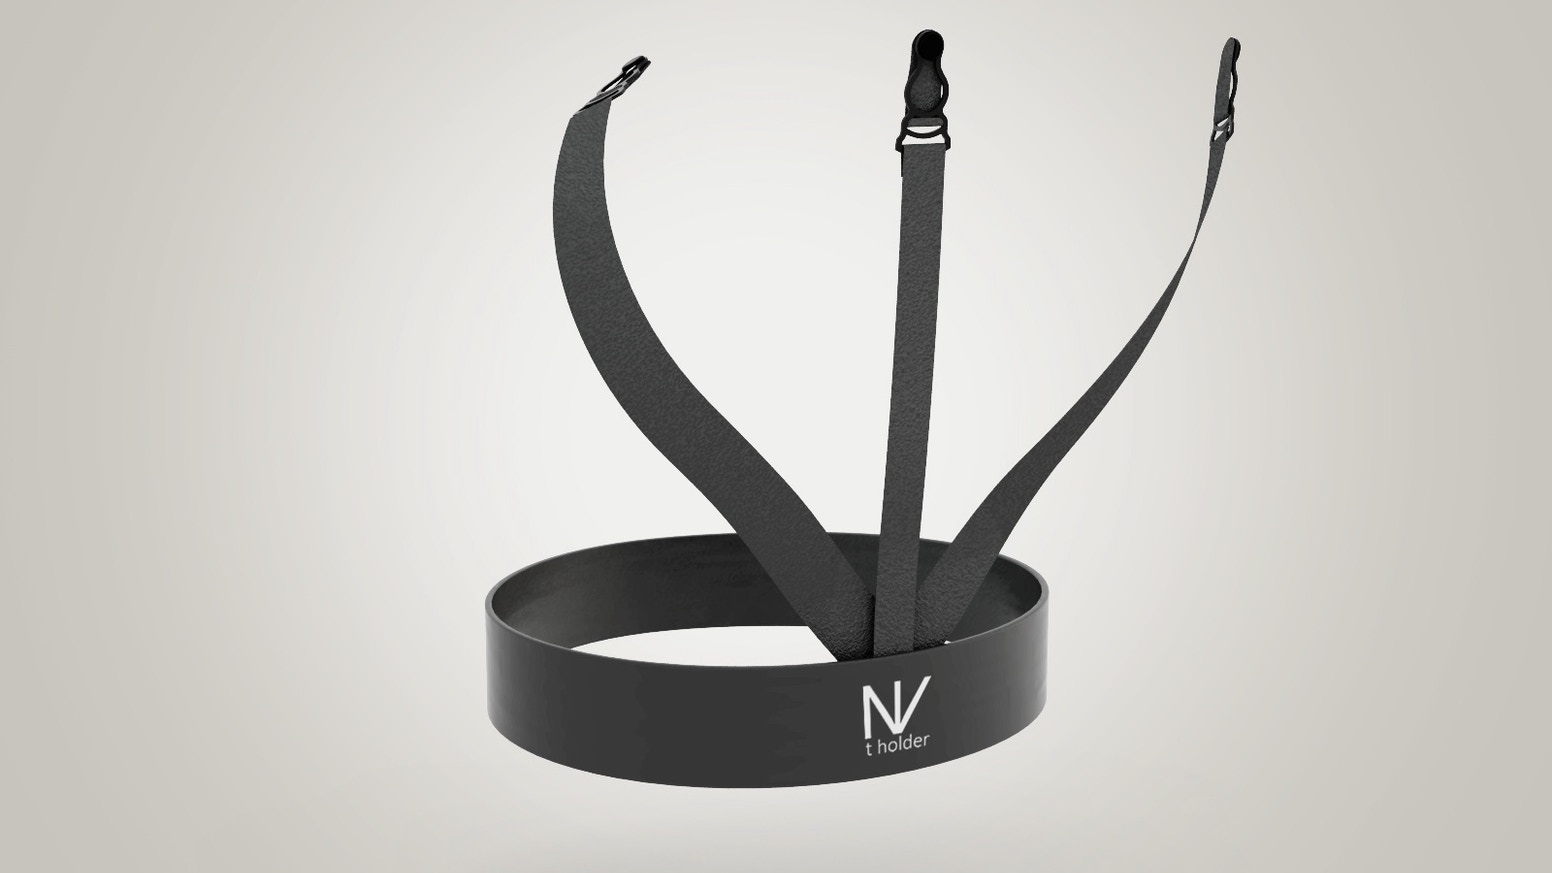 T-holder can solve everyday problems encountered by people, who want to look truly professional throughout the day!